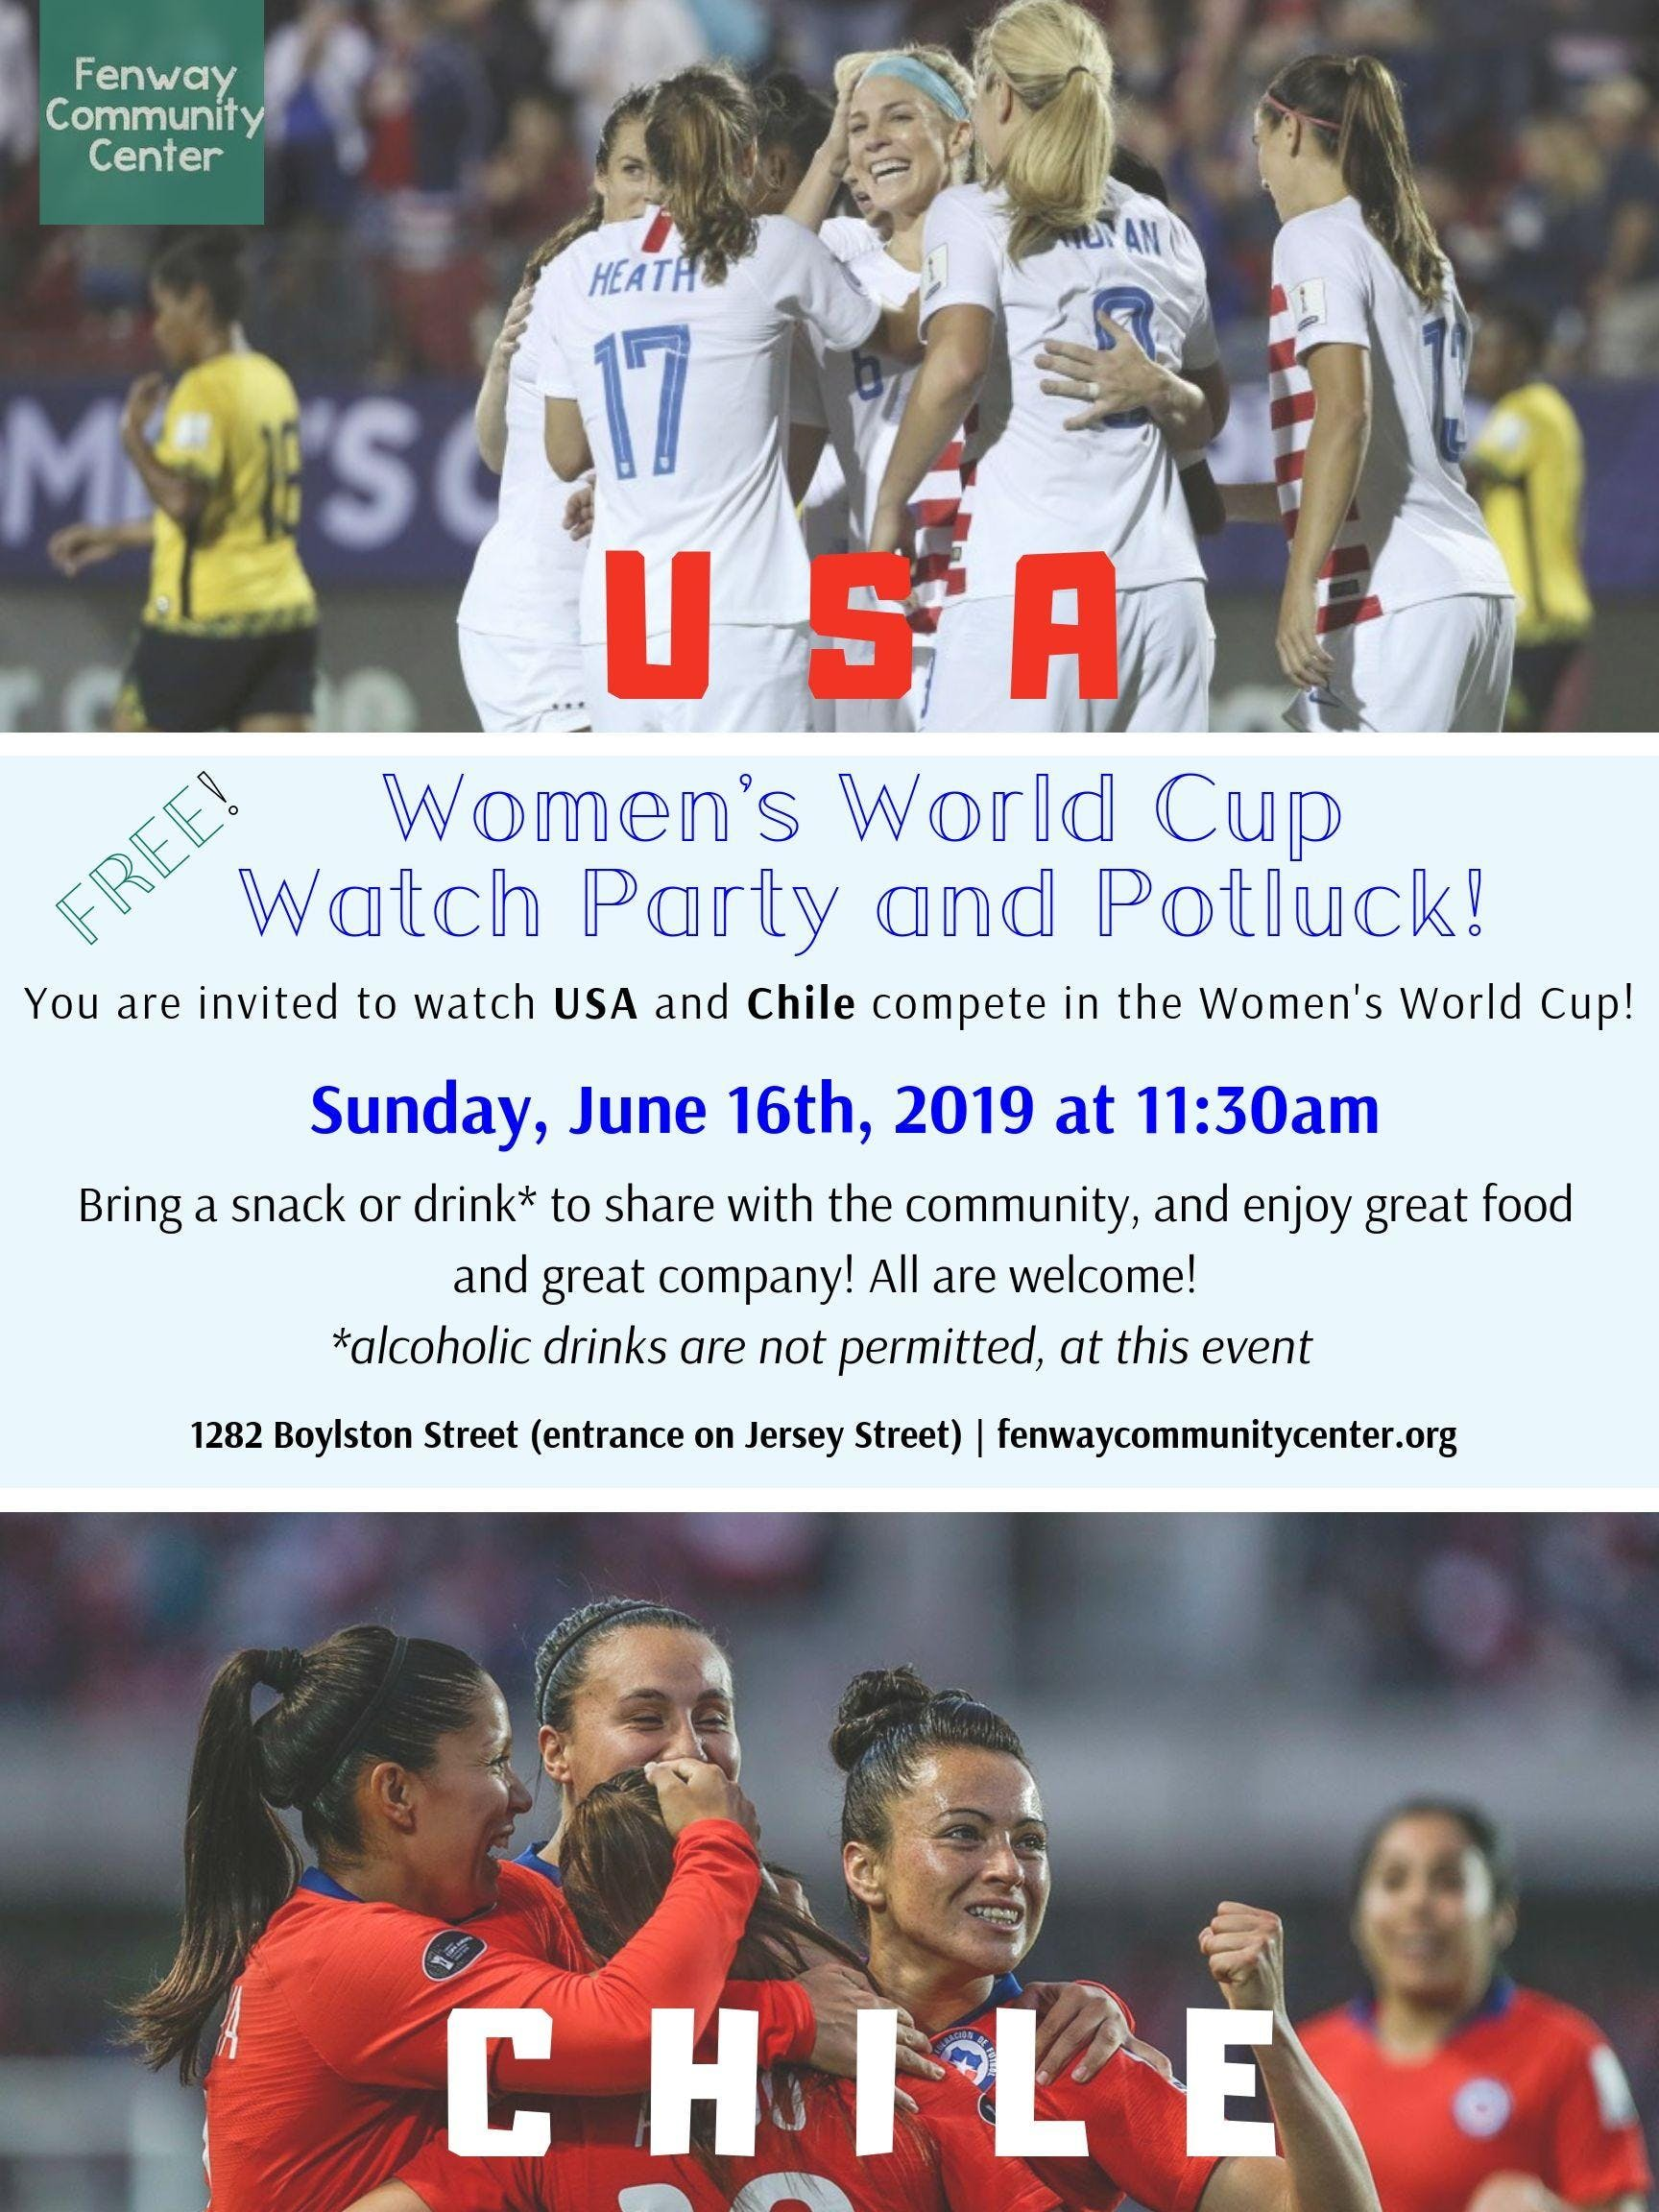 FIFA Women's World Cup Watch Party and Potluck